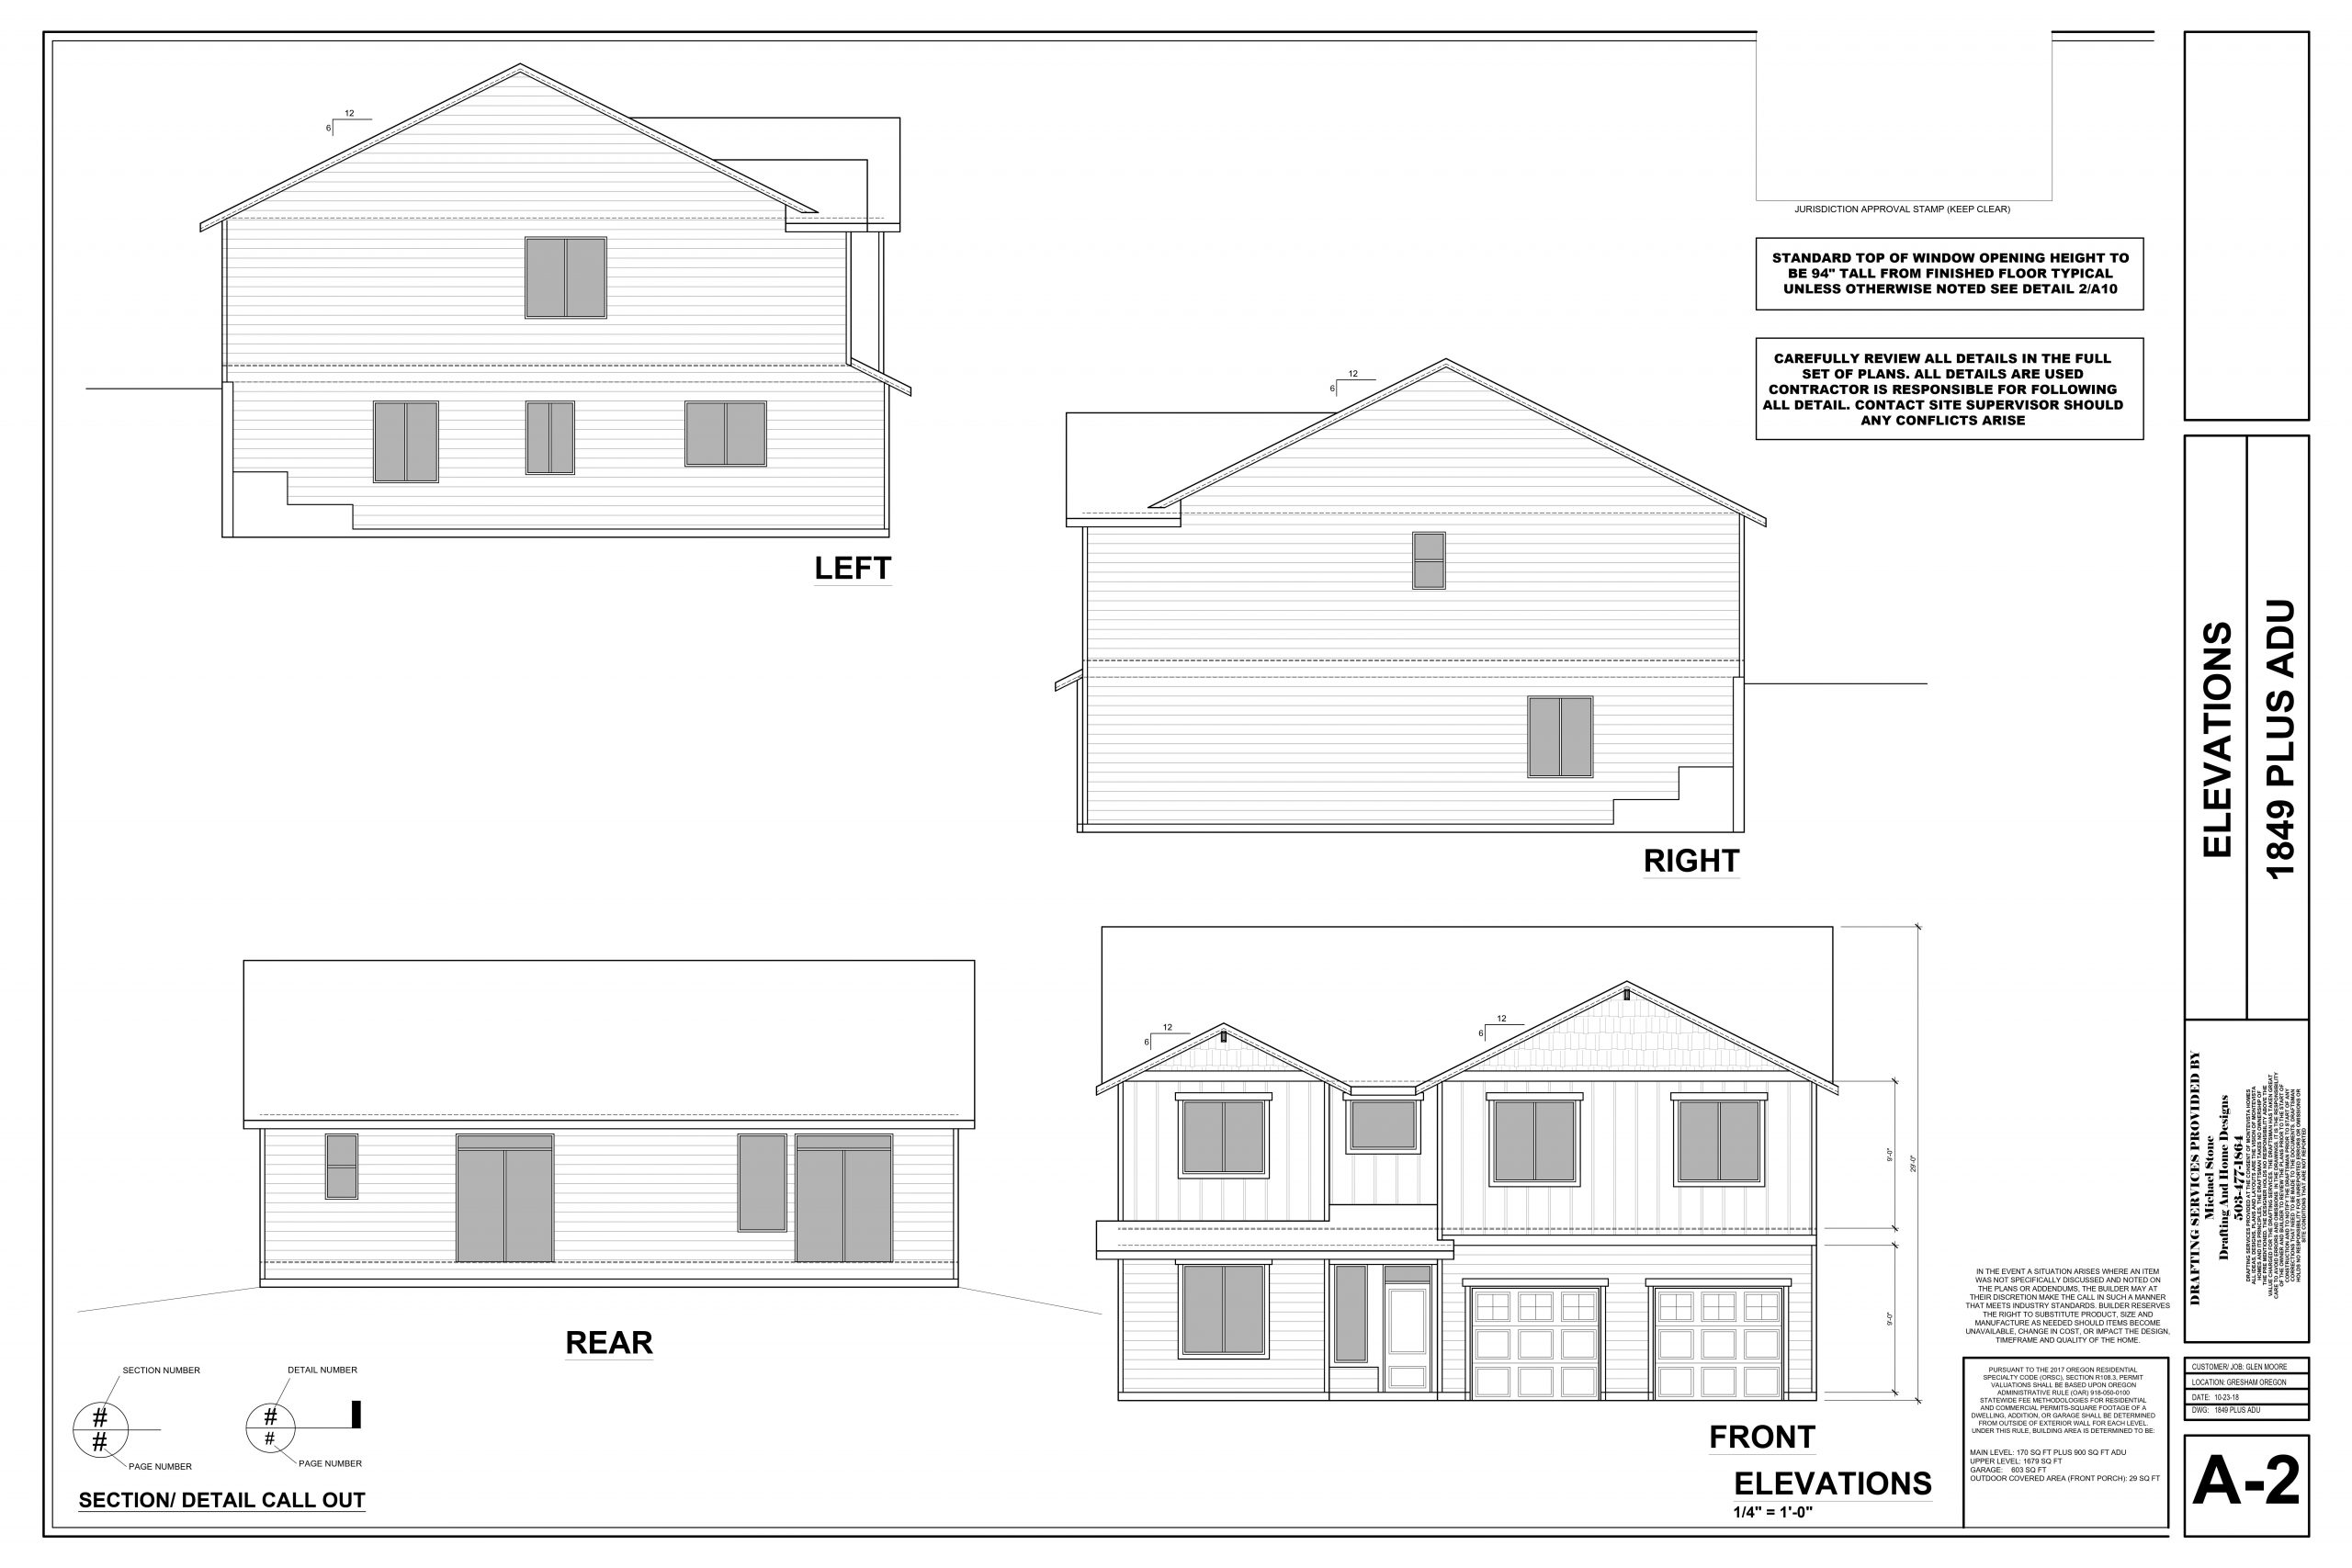 Design plans for one of the spec homes from Quality Calvary Construction